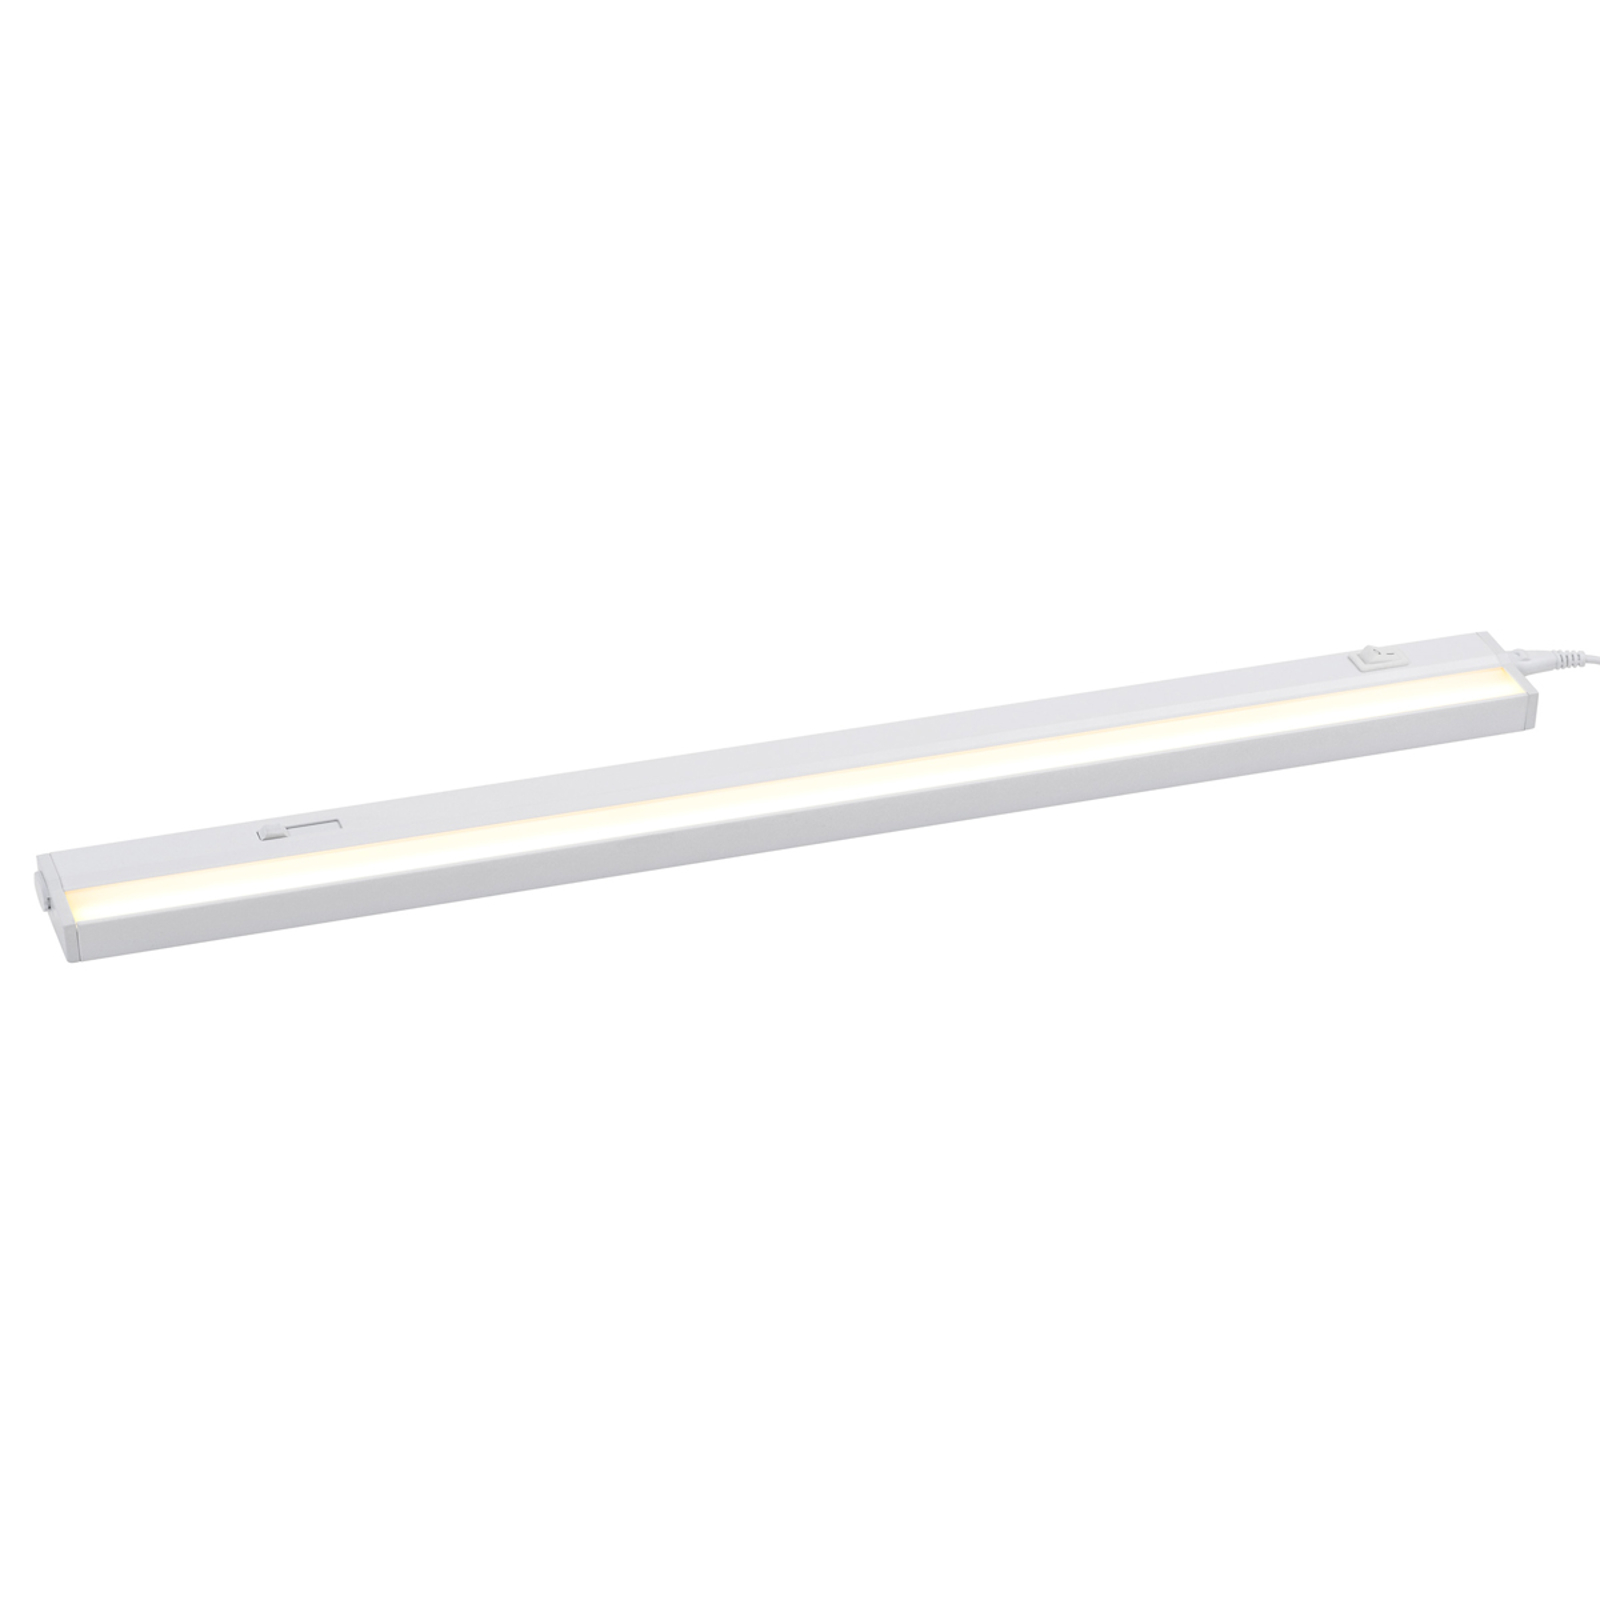 Cabinet Light LED under-cabinet light - dimmable_8559236_1